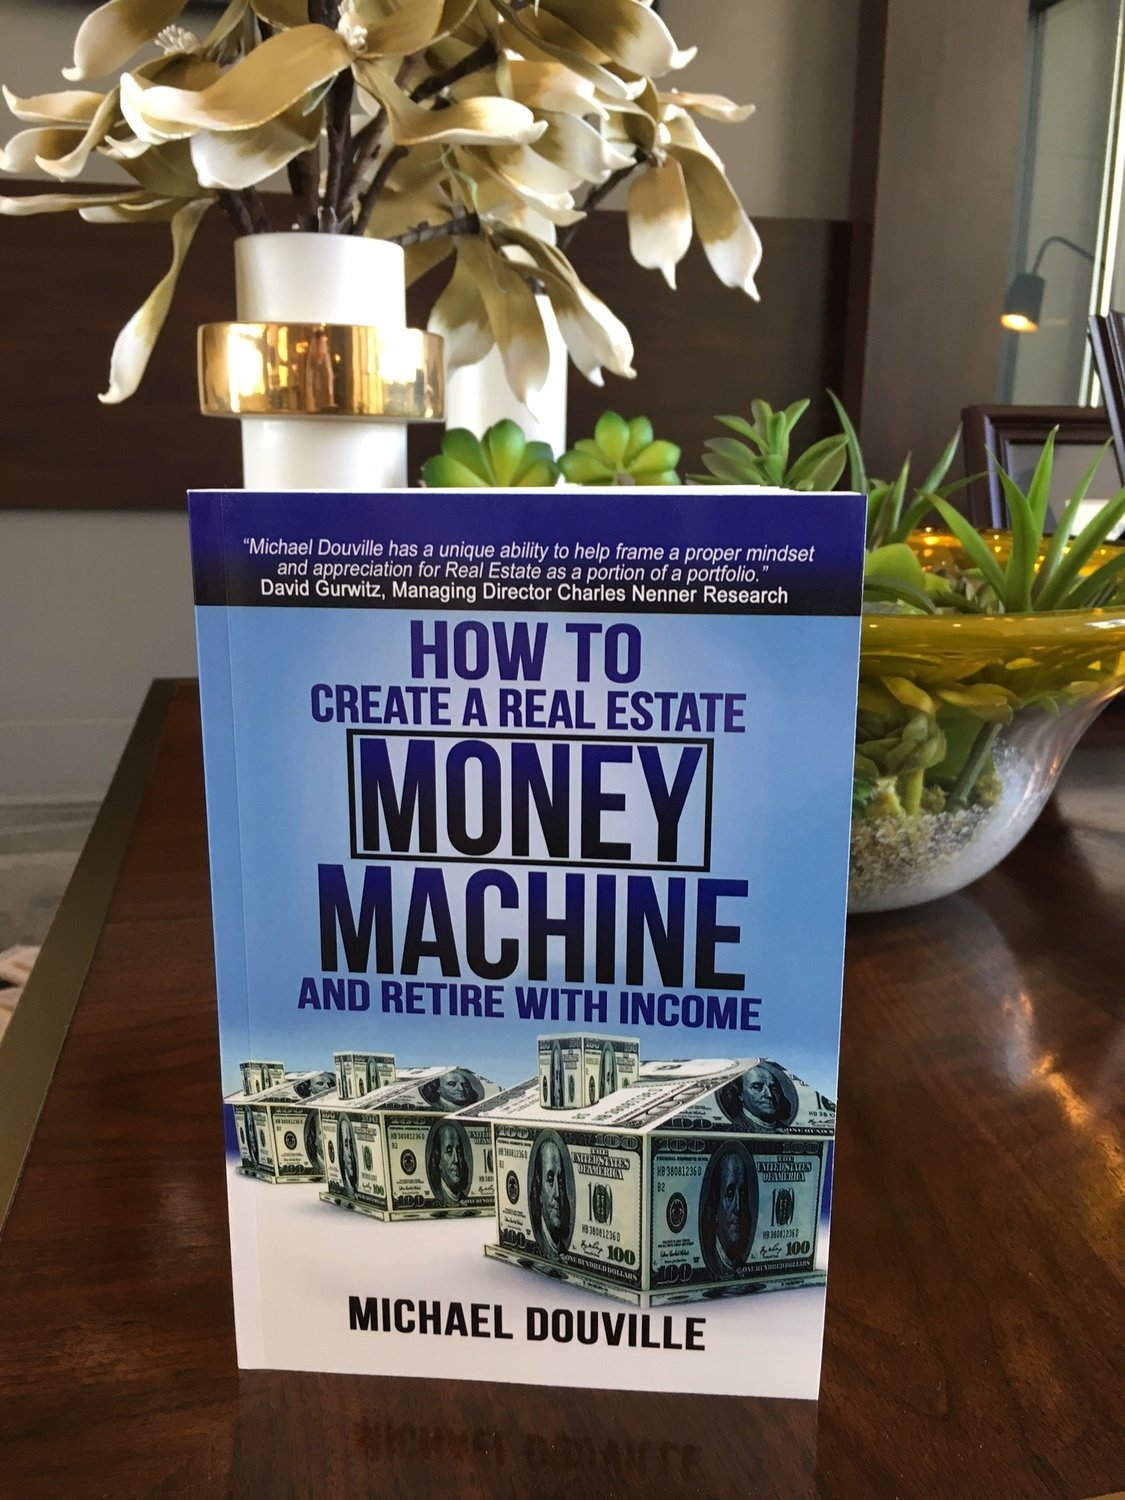 Paperback Book How To Create A Real Estate Money Machine And Retire With Income